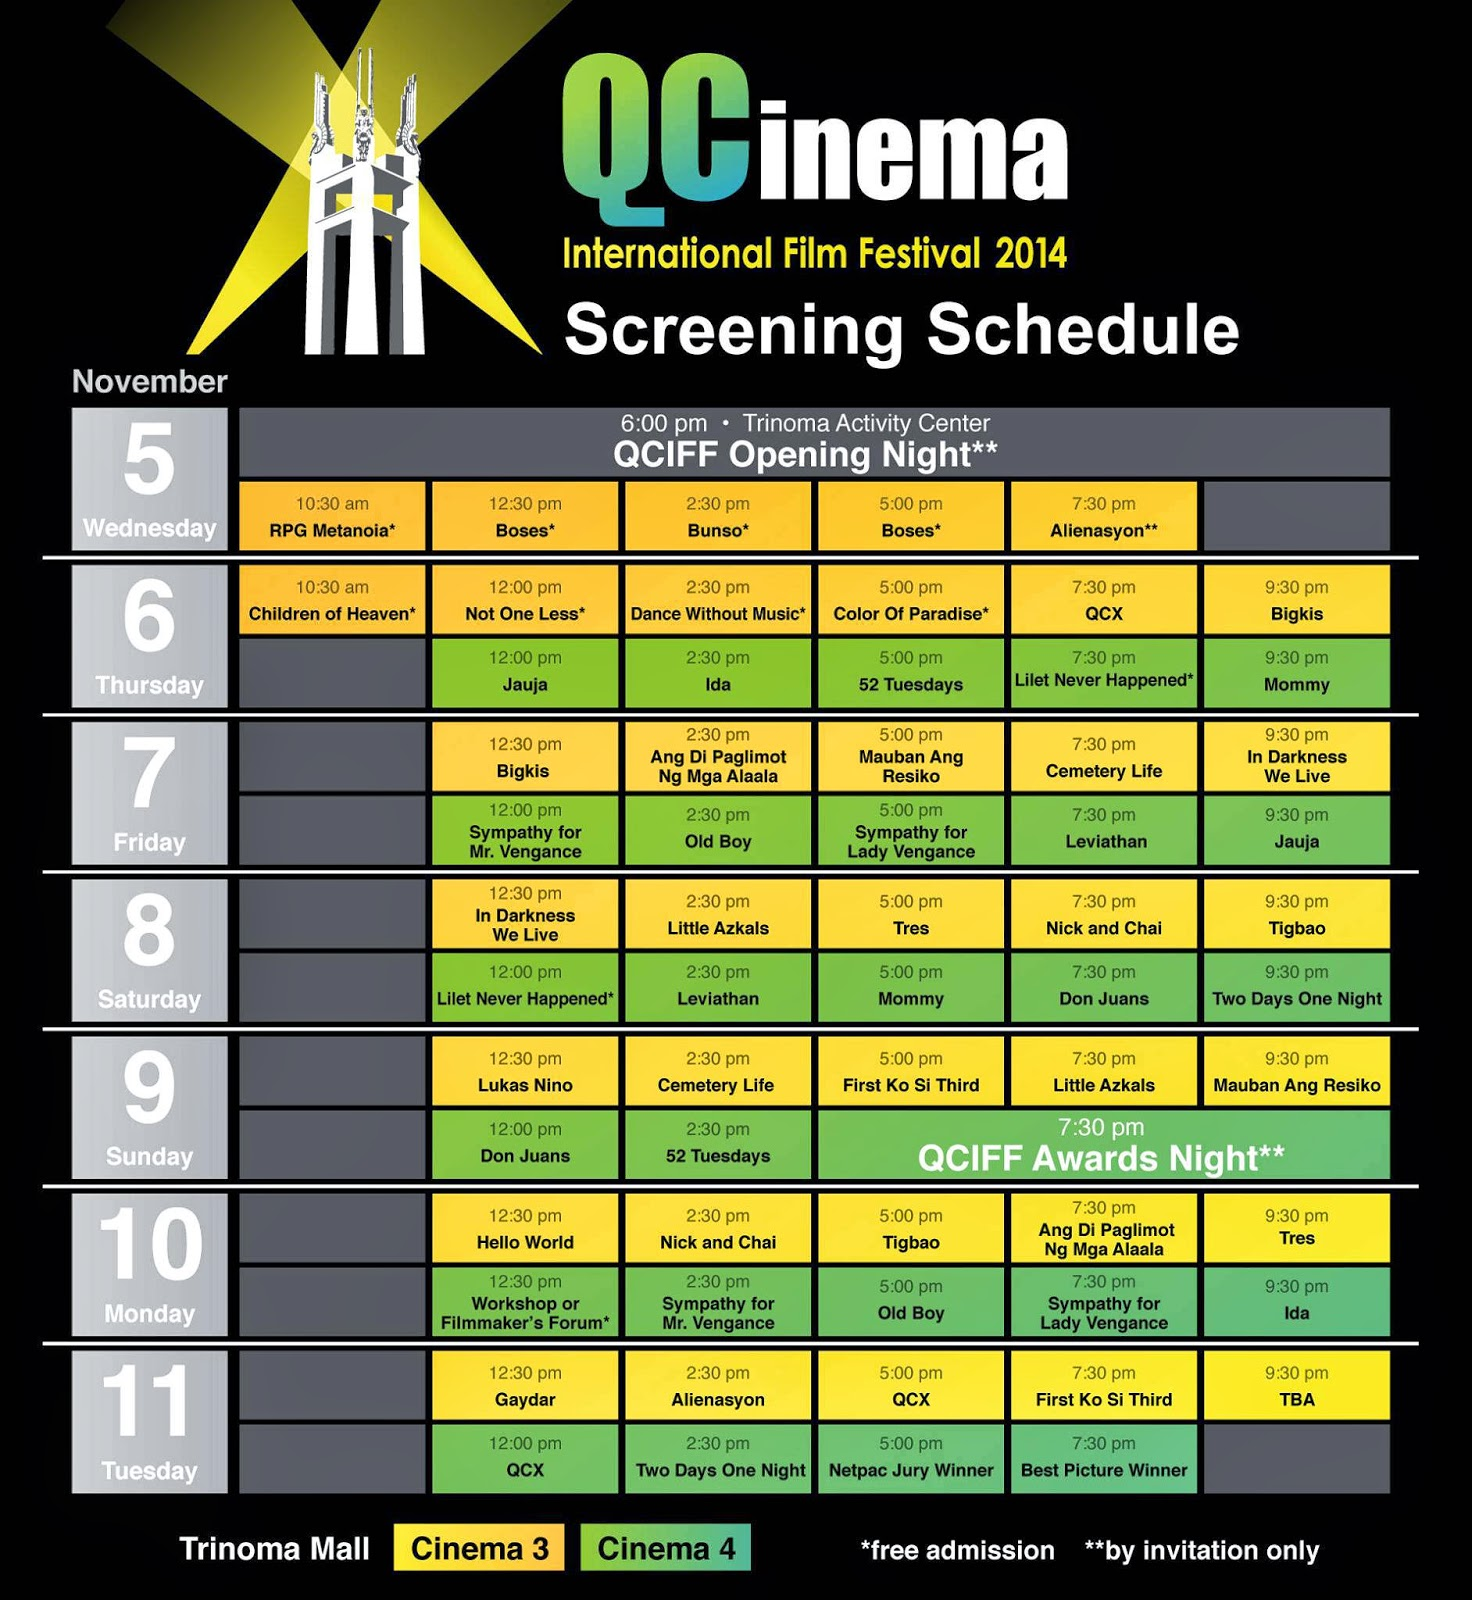 QCinema International Film Festival 2014